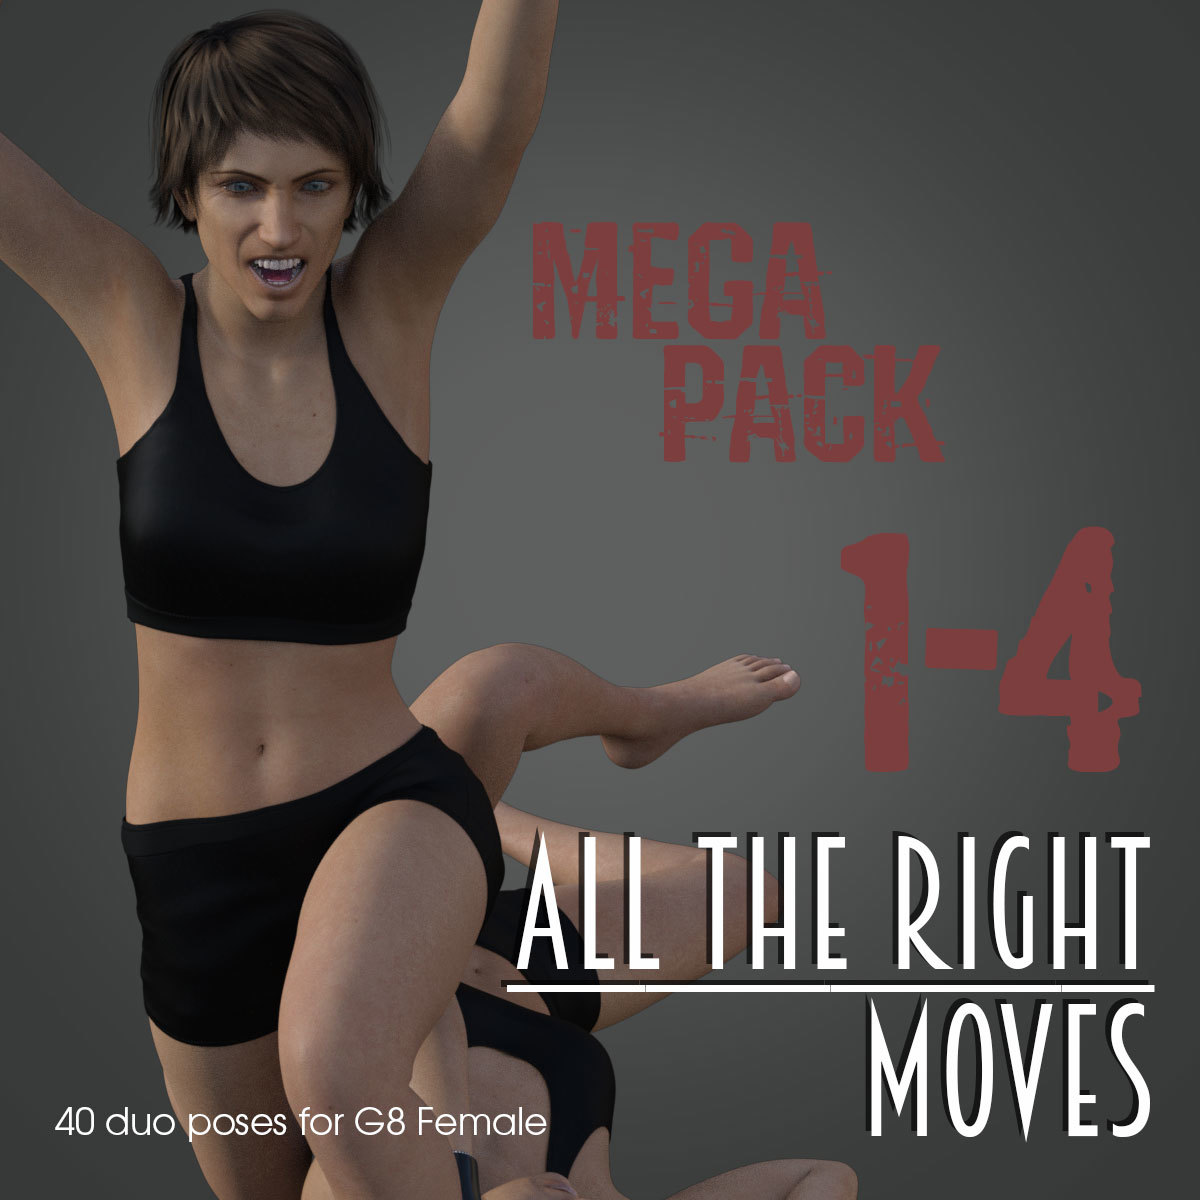 ALL THE RIGHT MOVES vol.1-4 MEGAPACK for Genesis 8 Female by PainMD